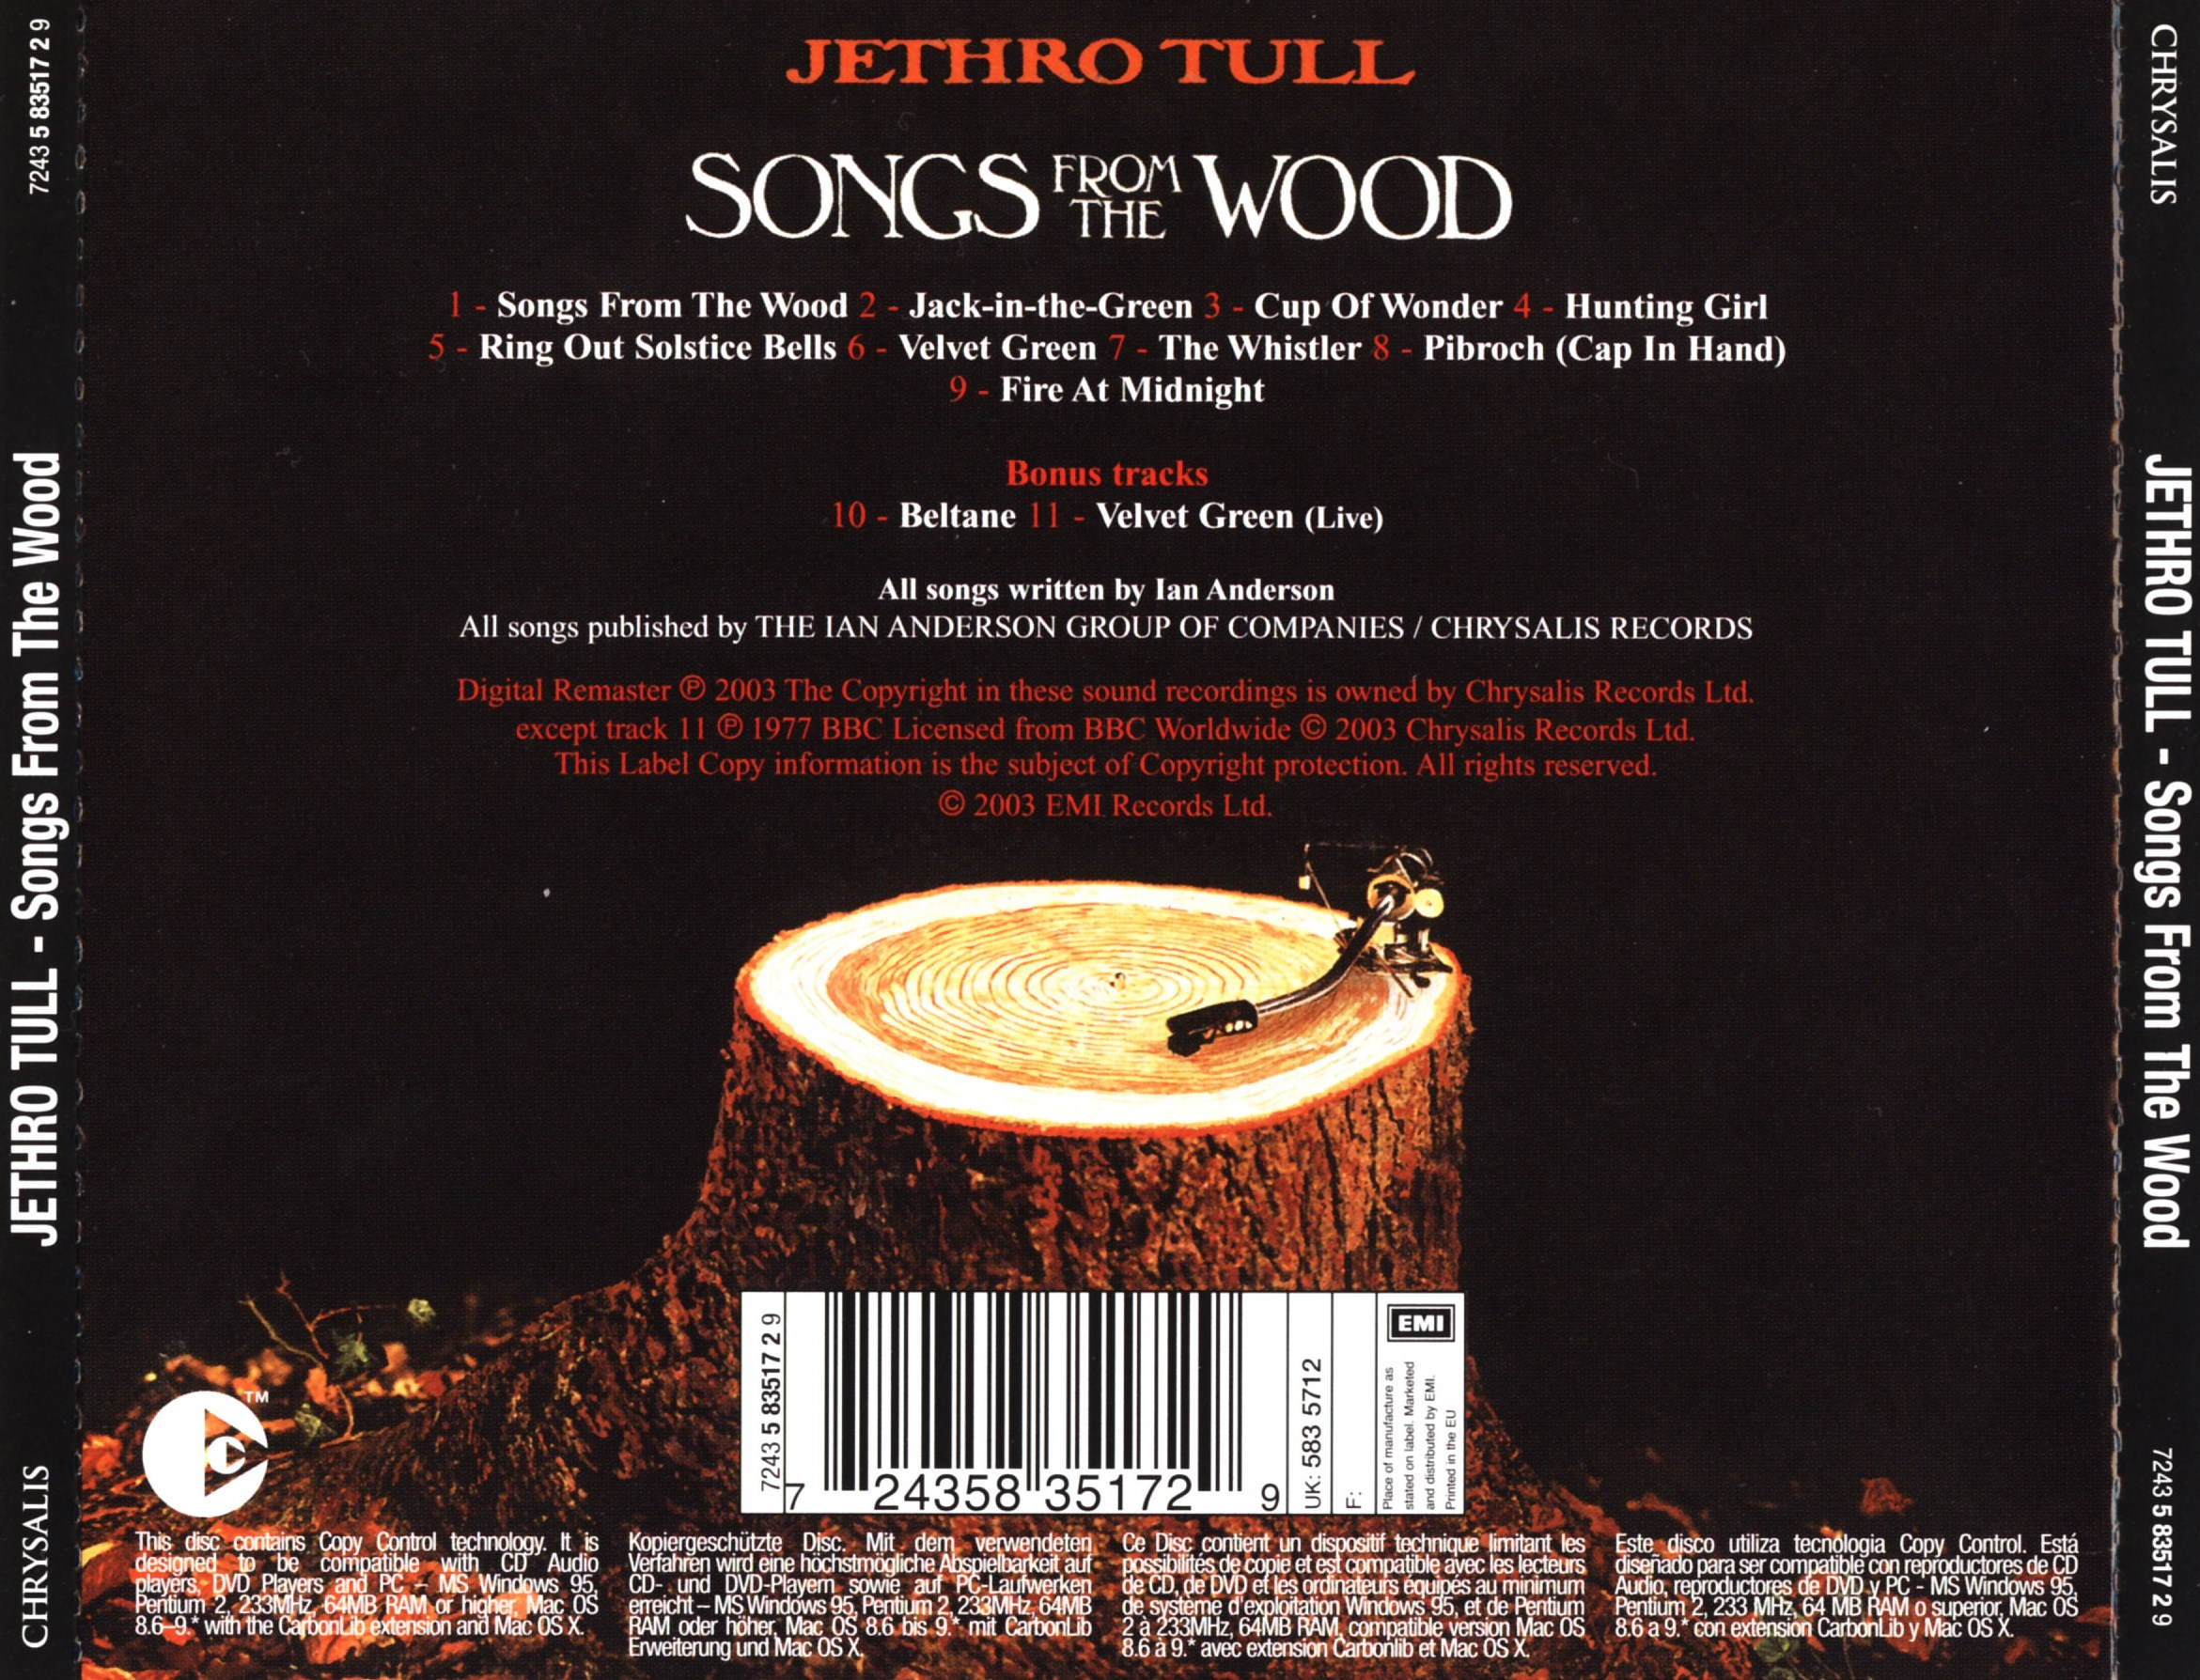 Jethro Tull - Songs From The Wood - Back